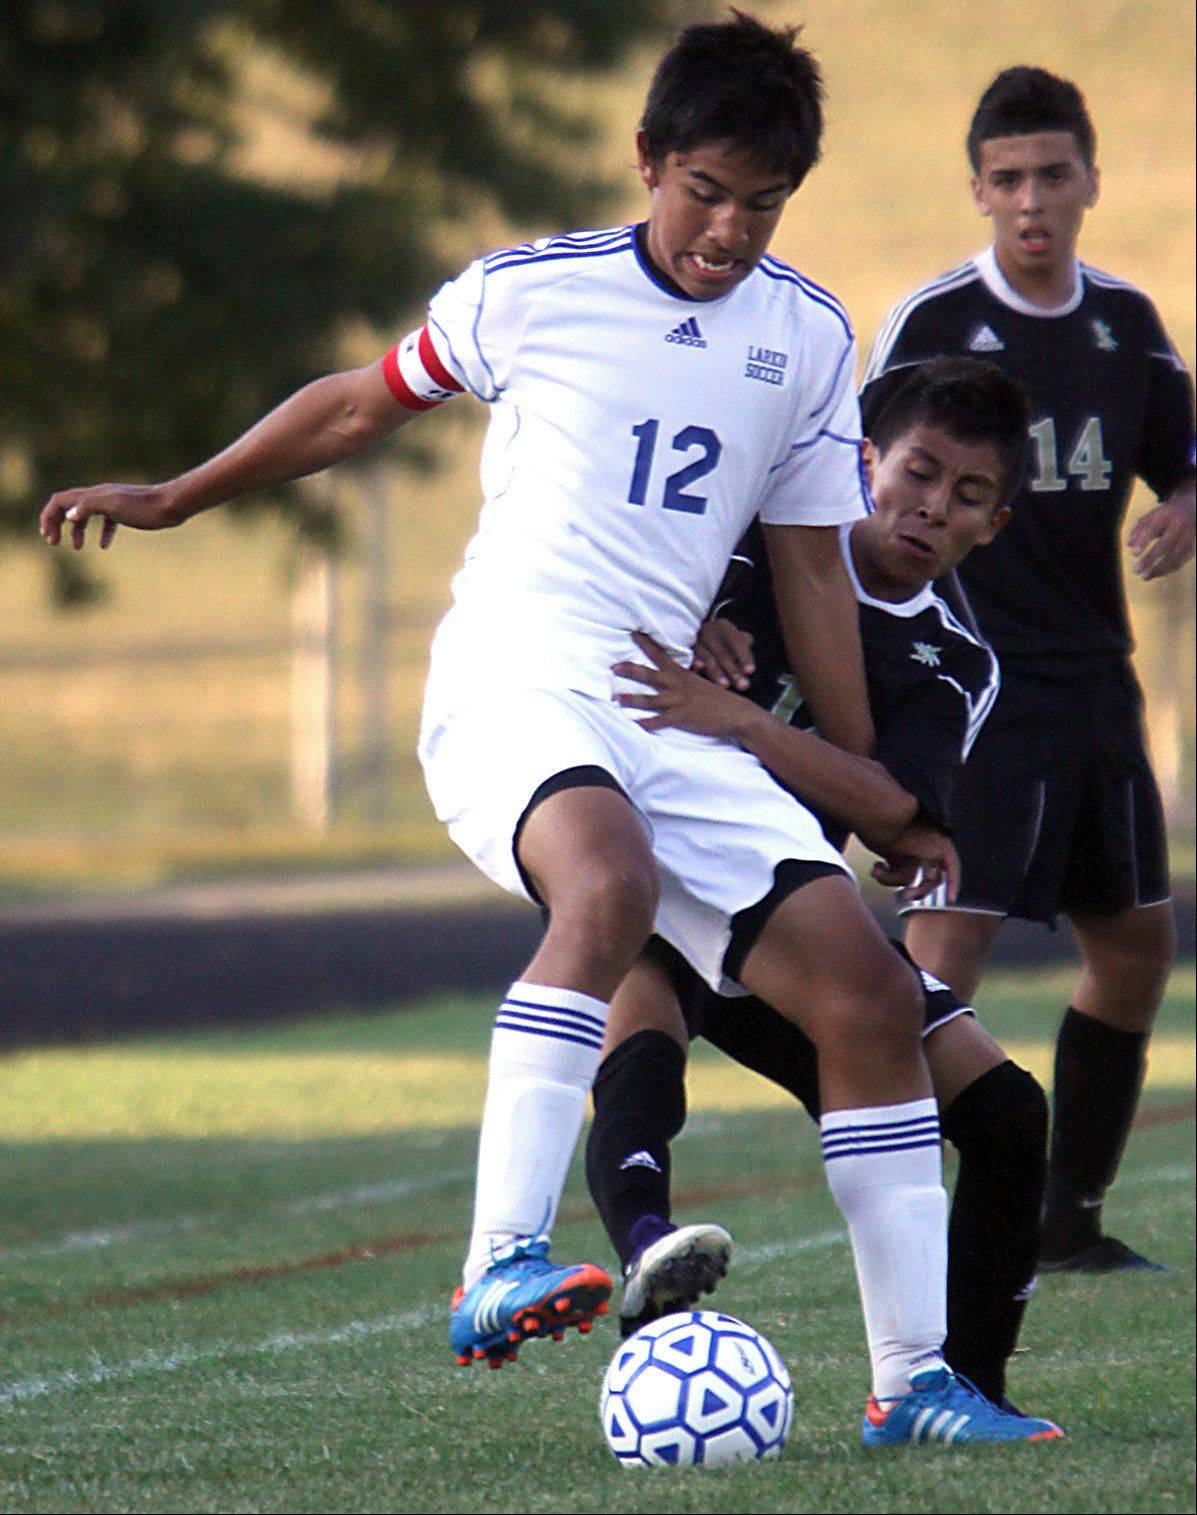 Larkin's Tony Hernandez, left, battles Streamwood's Edwin Rueda, right, for control of the ball during a varsity soccer game at Memorial Field in Elgin on Thursday night.